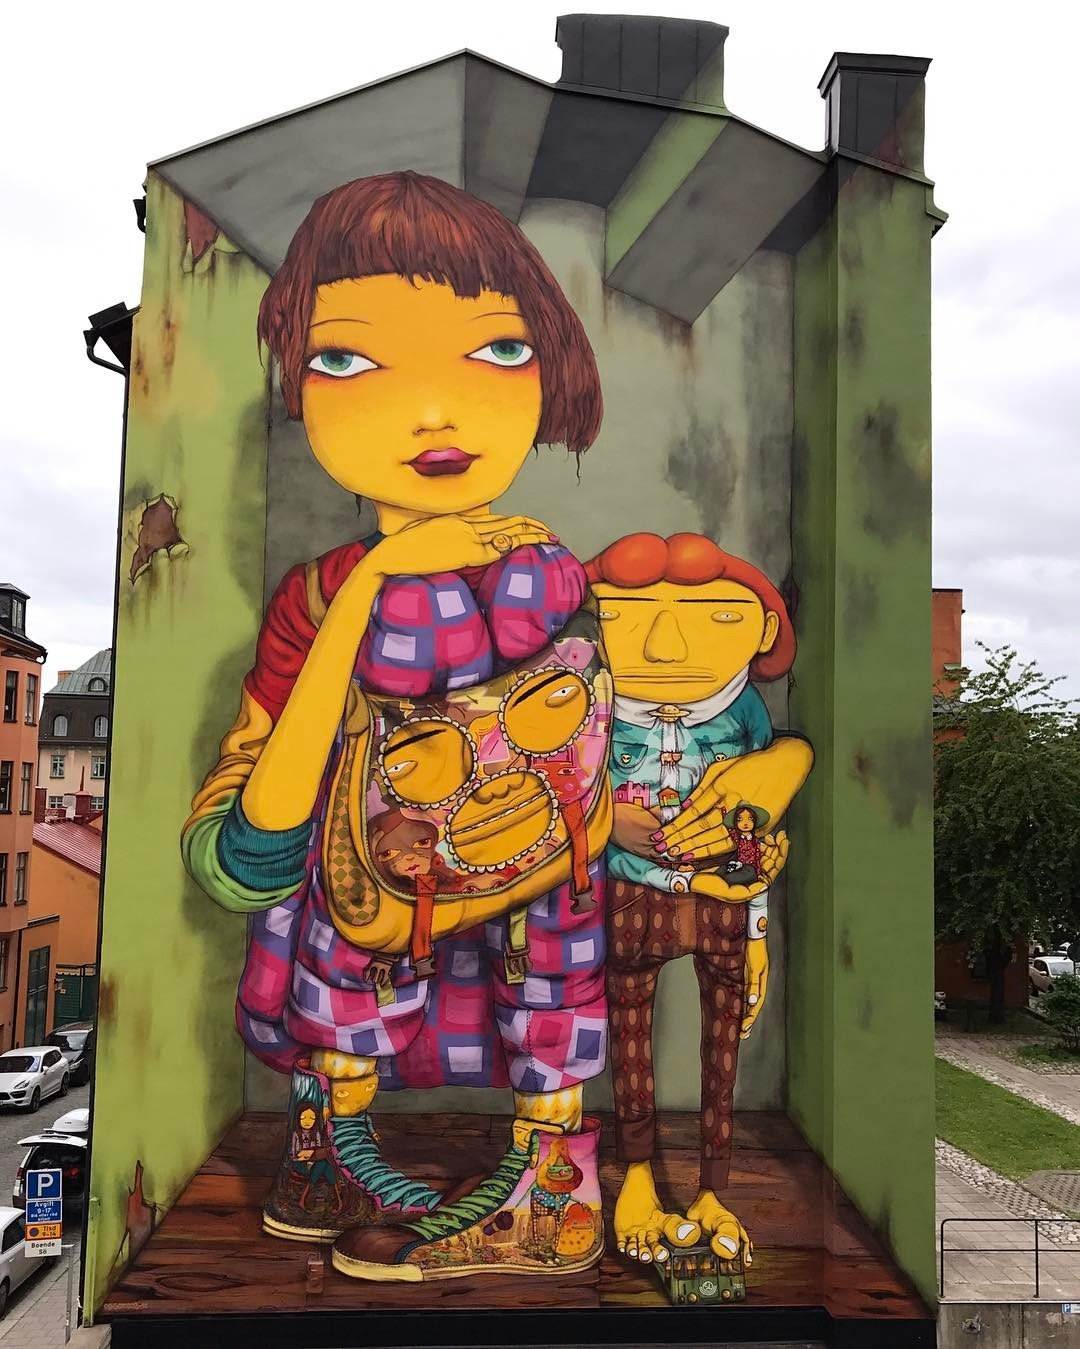 Streets: Os Gemeos (Stockholm) (8 pics)